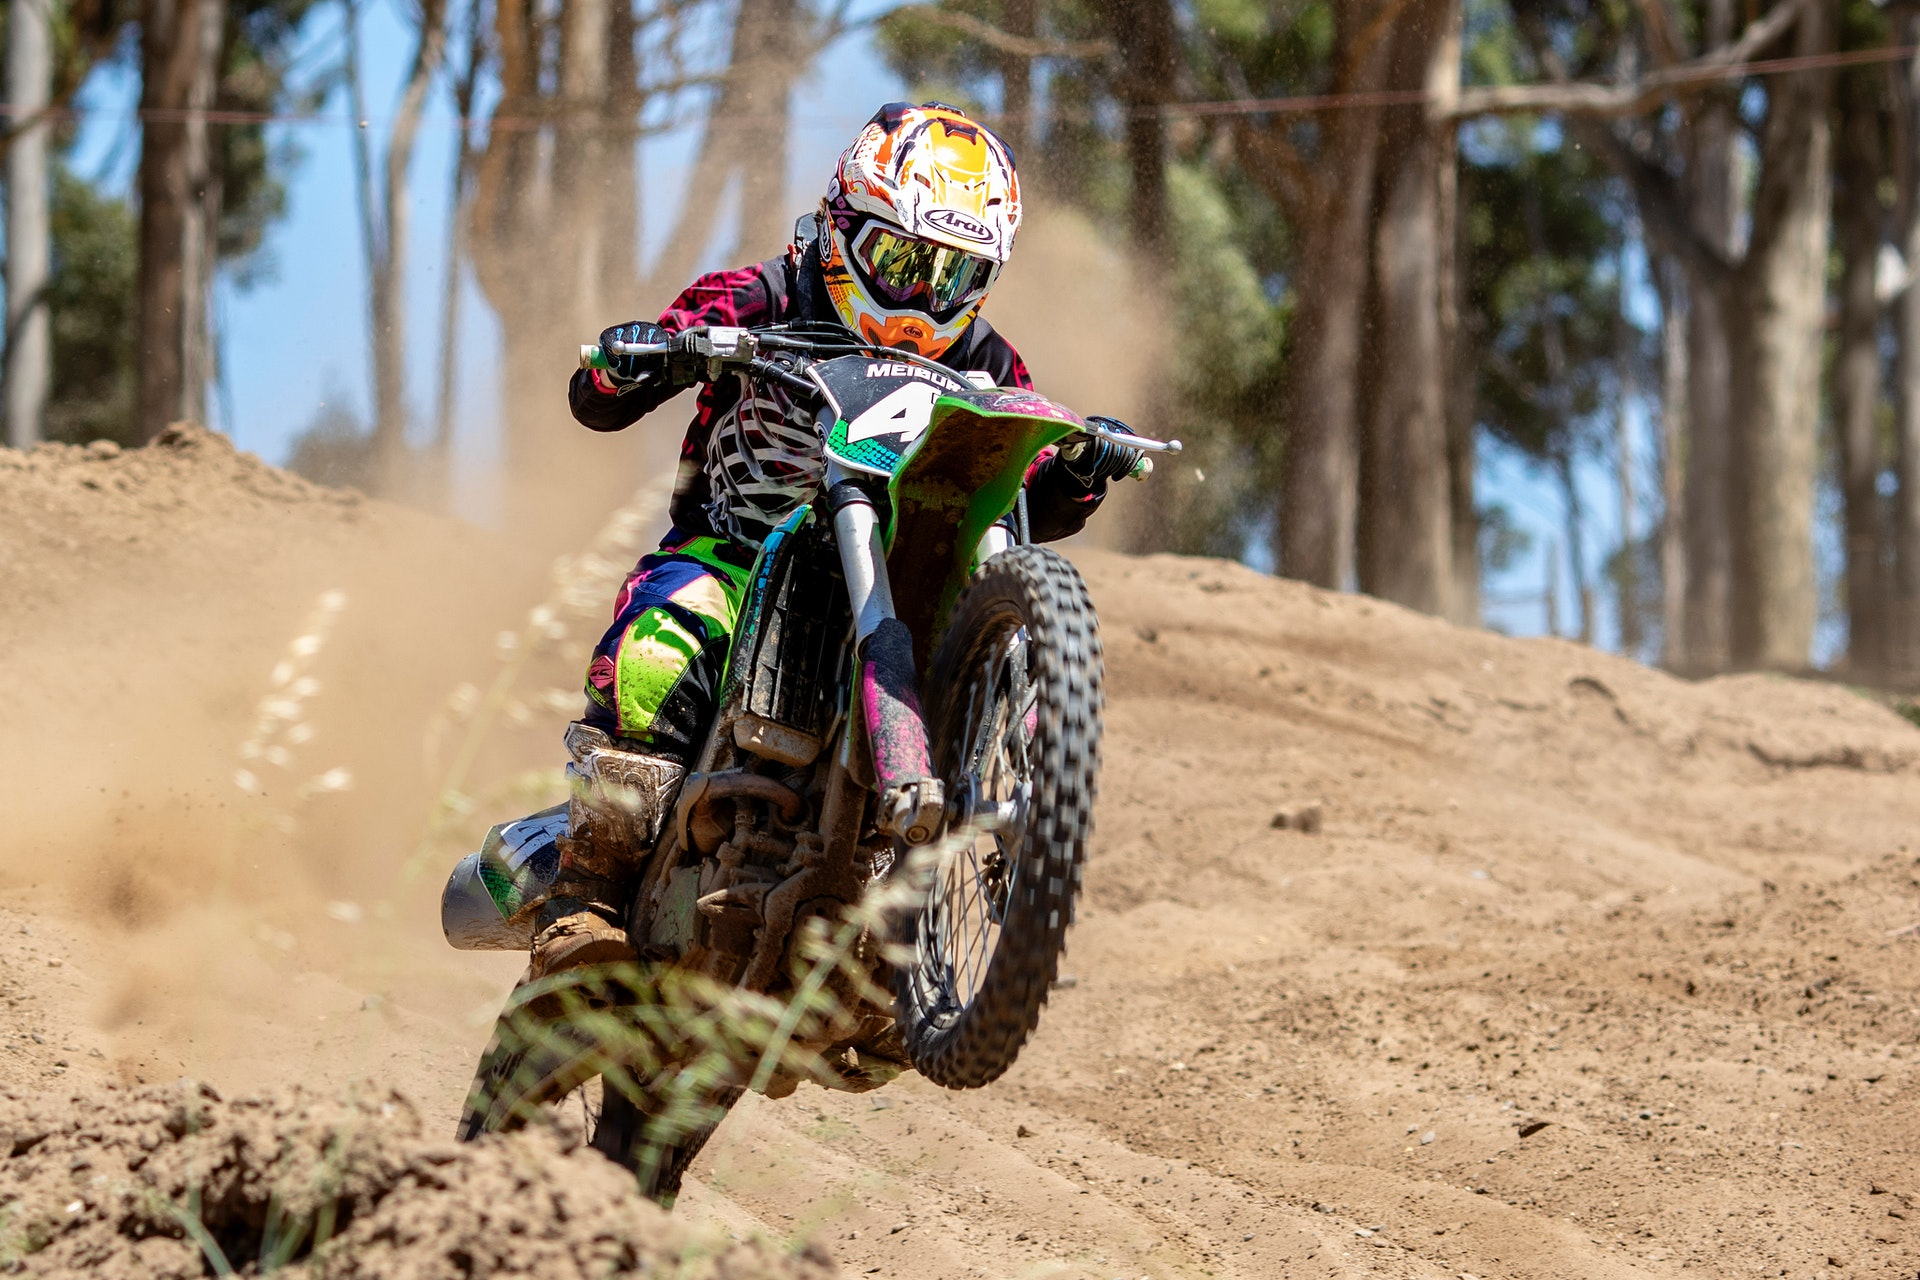 The Best Automatic Dirt Bikes for 2021